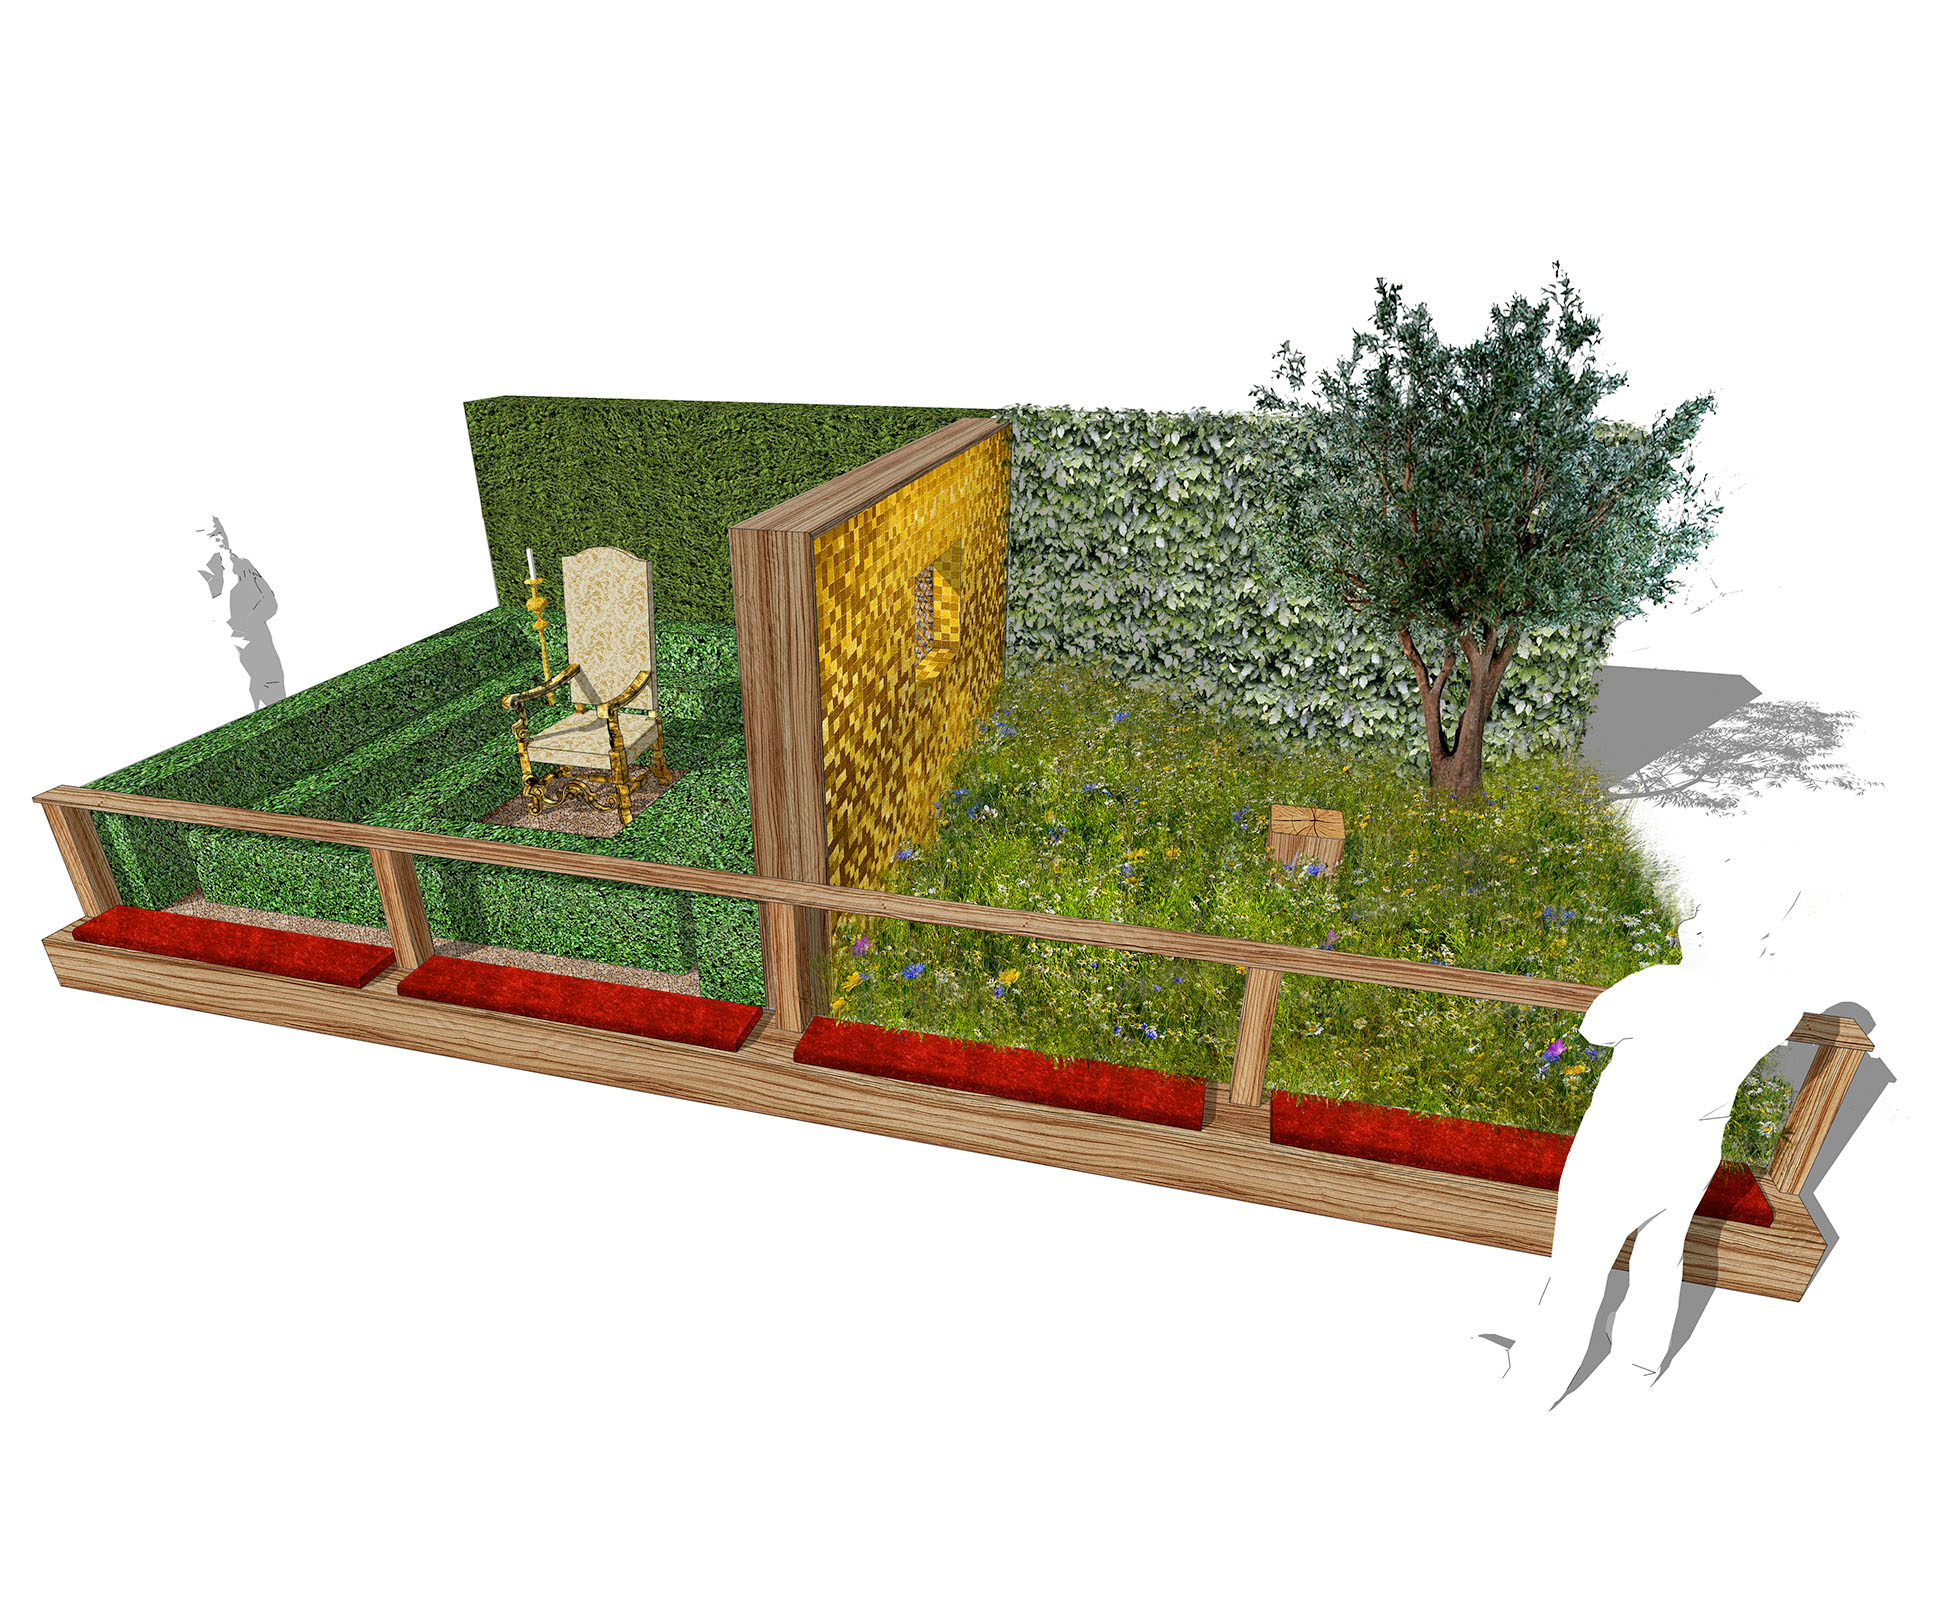 This conceptual garden designed on the theme of the seven deadly sins, expresses Greed at Hampton Court Palace Show Garden. Original concept and sketch design presented to the RHS in the early stages.